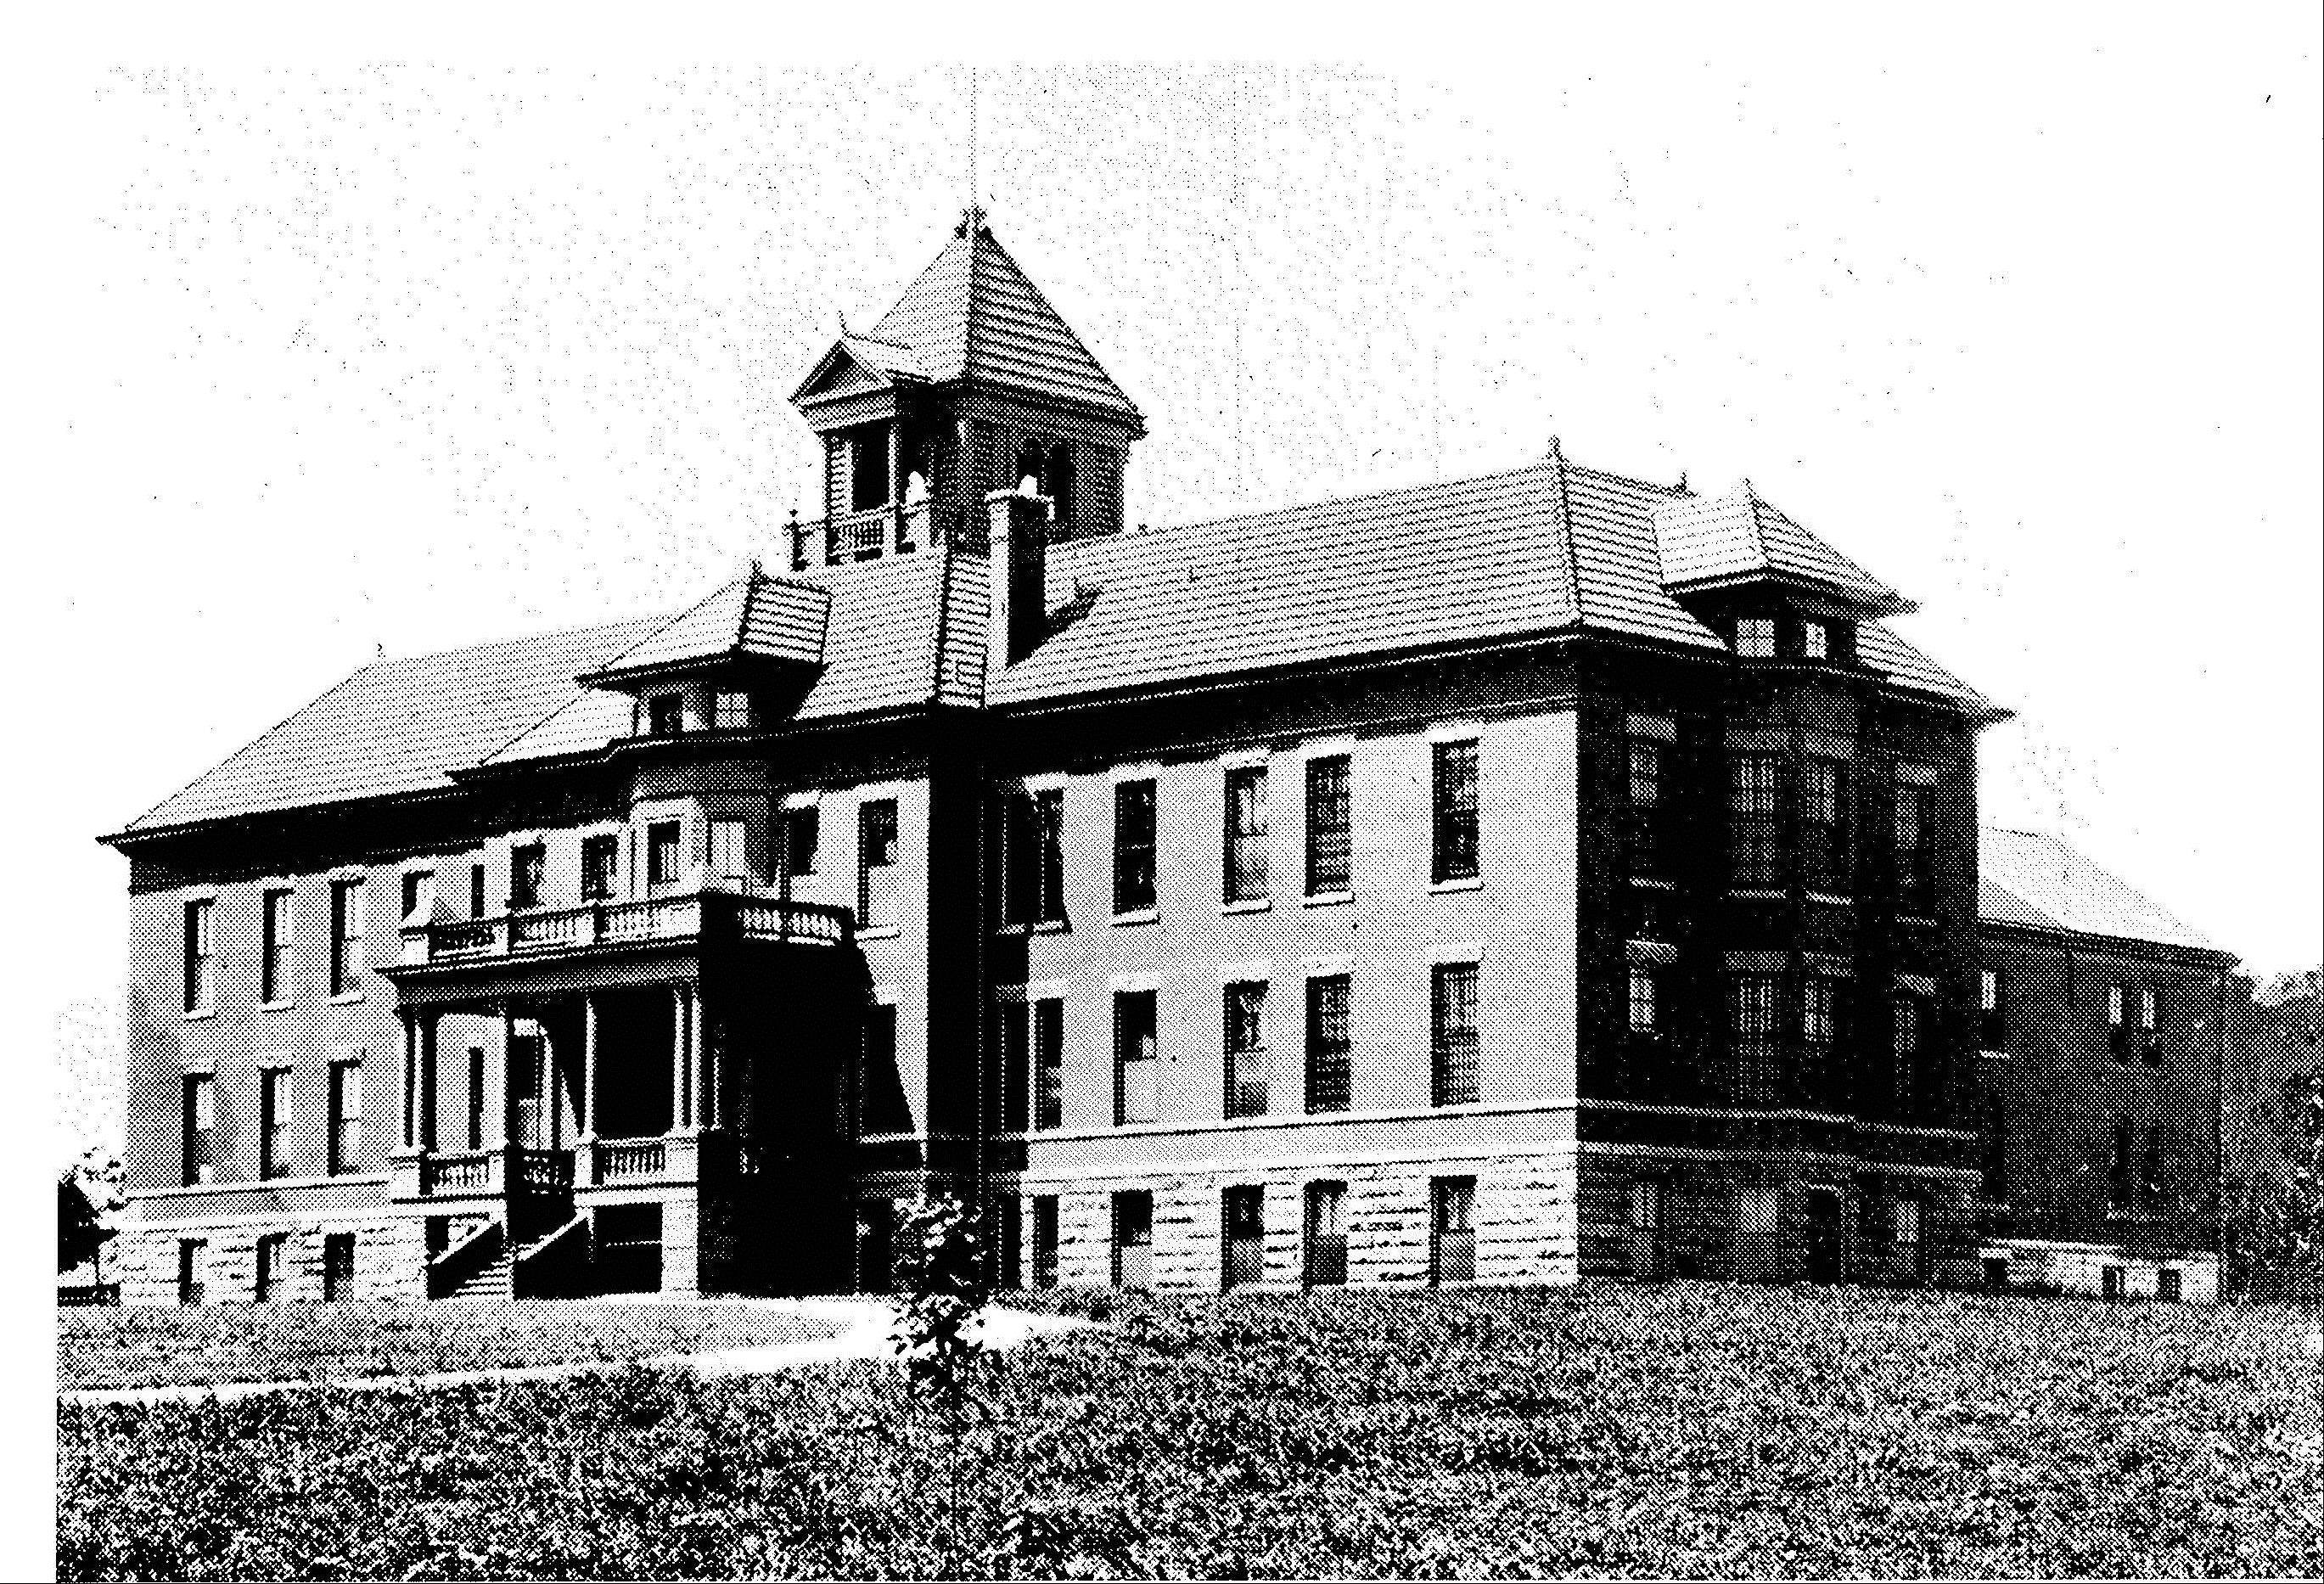 DuPage's Alms House had an average of 35 residents during the early 1900s. For most of those individuals, their stay at the facility was only temporary.